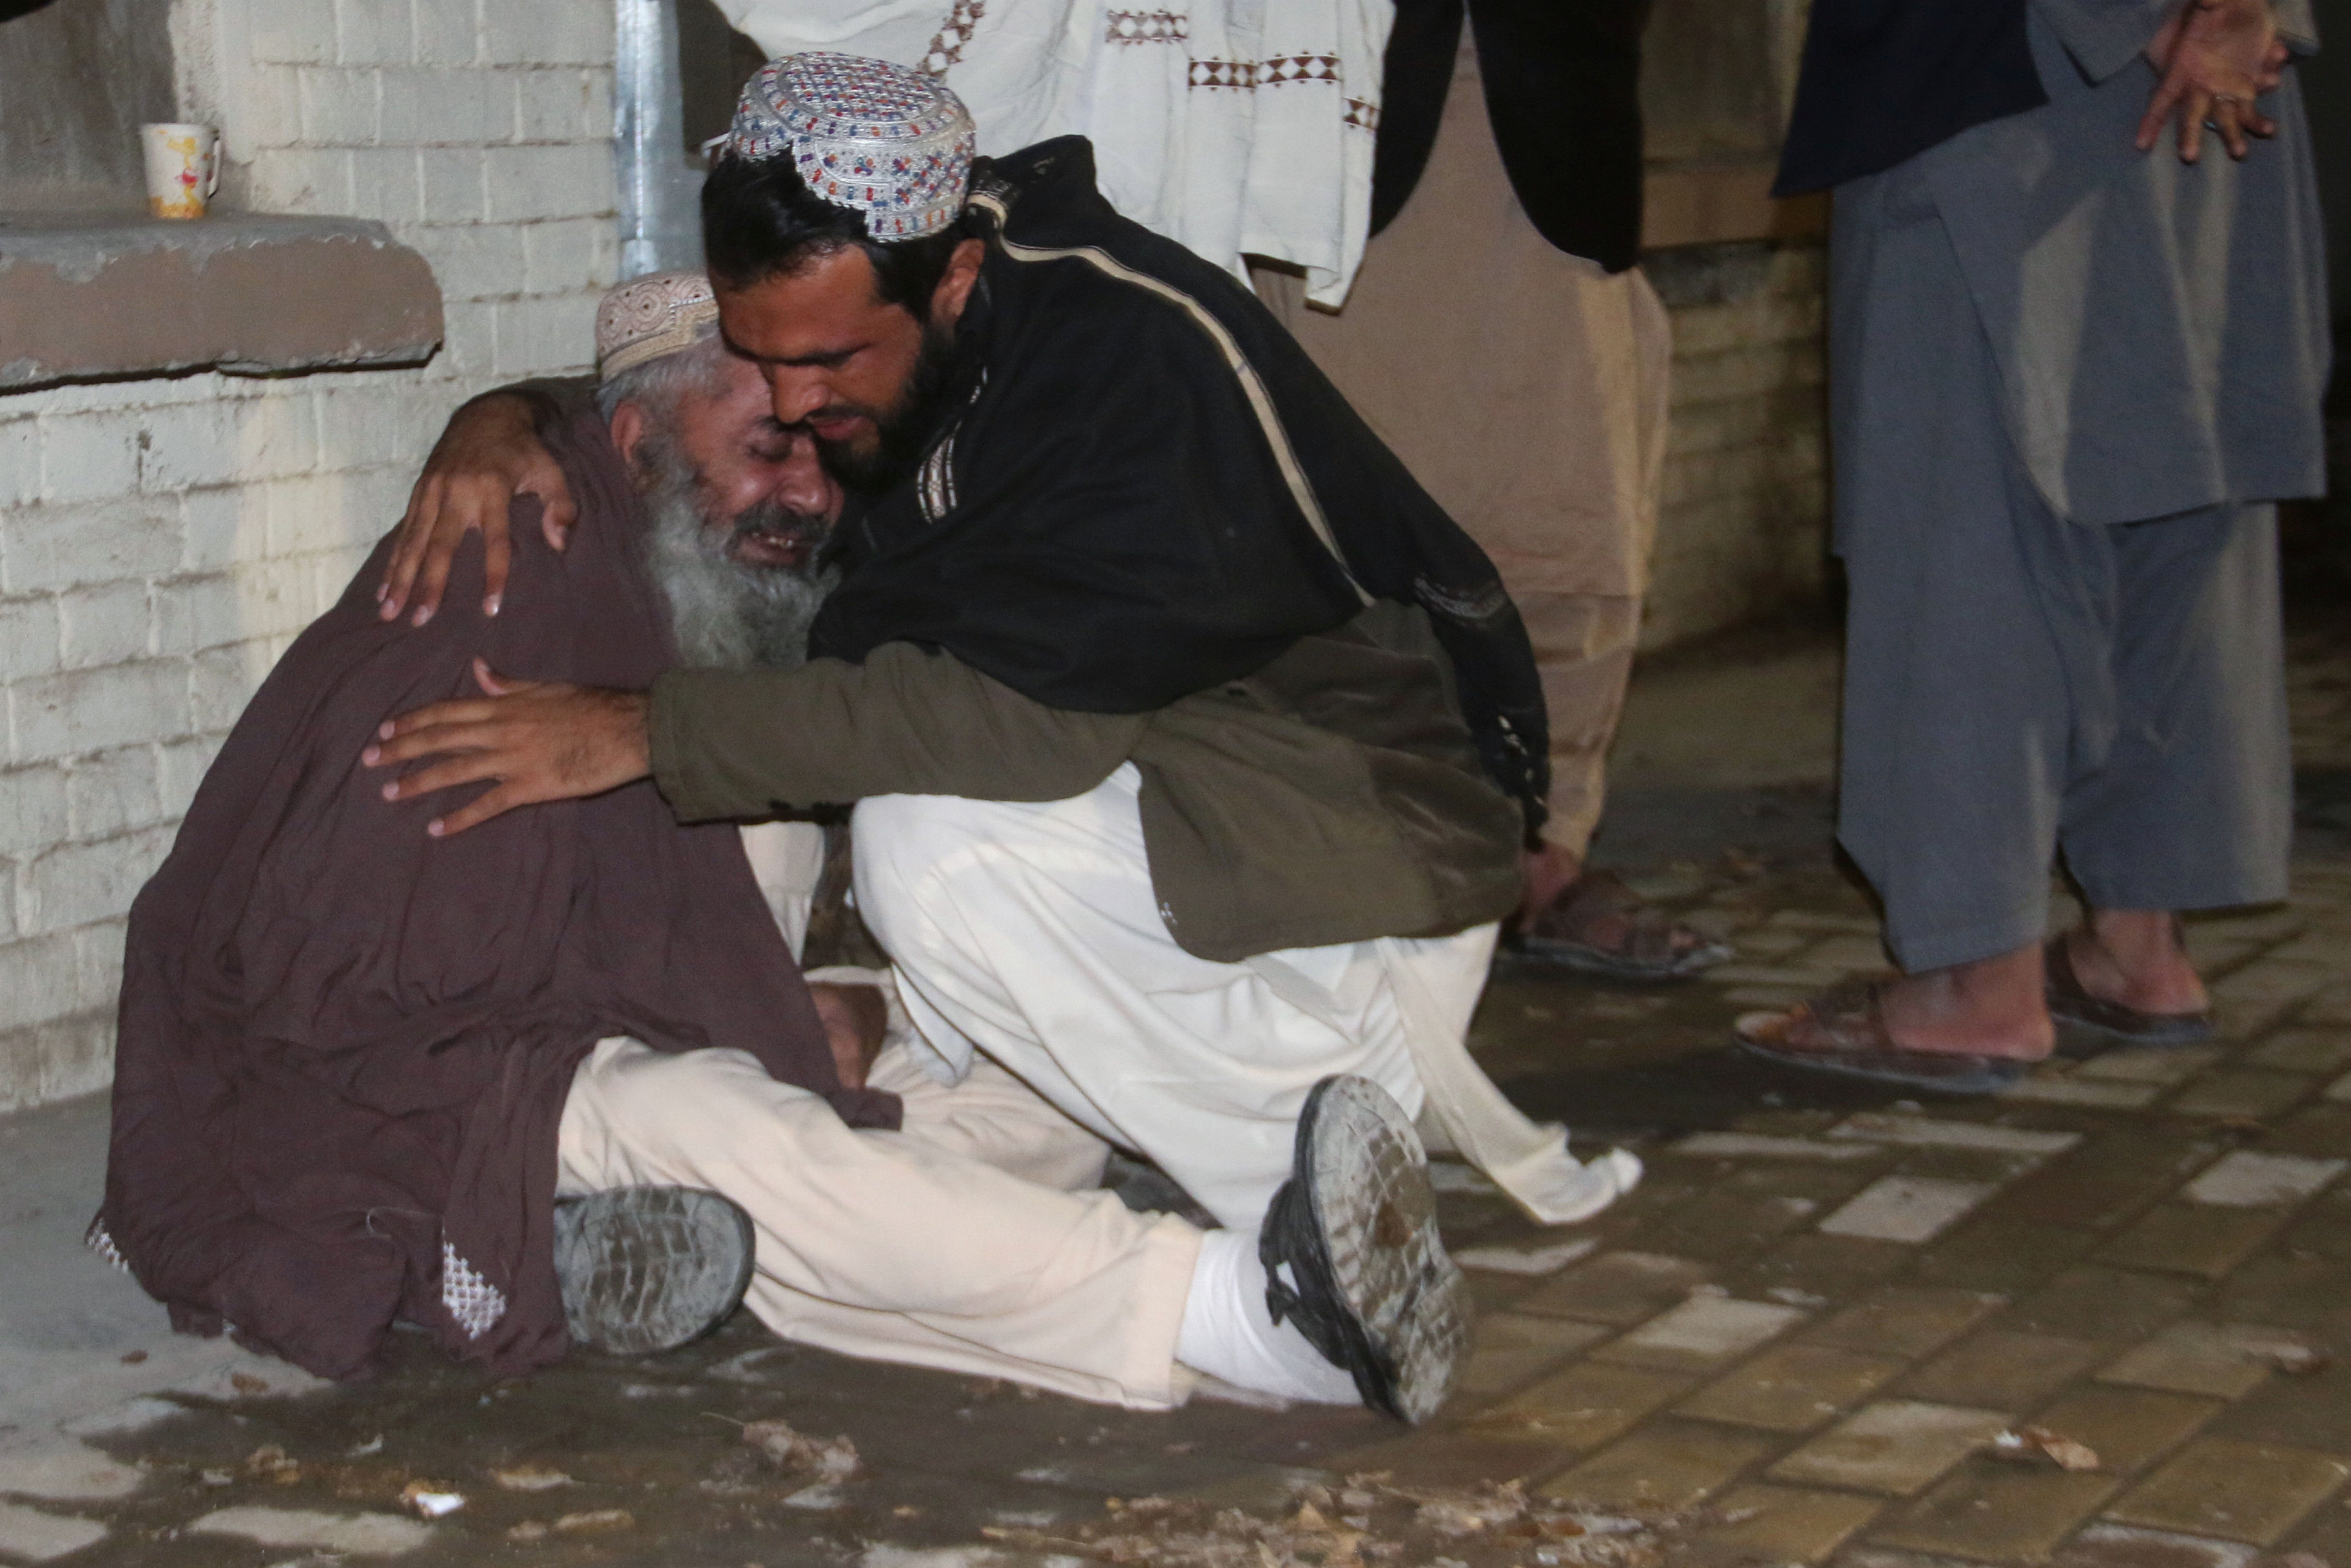 Men comfort each other as they mourn the death of a relative who was killed in a bomb blast in a mosque, at a hospital morgue in Quetta, Pakistan January 10, 2020. REUTERS/Naseer Ahmed